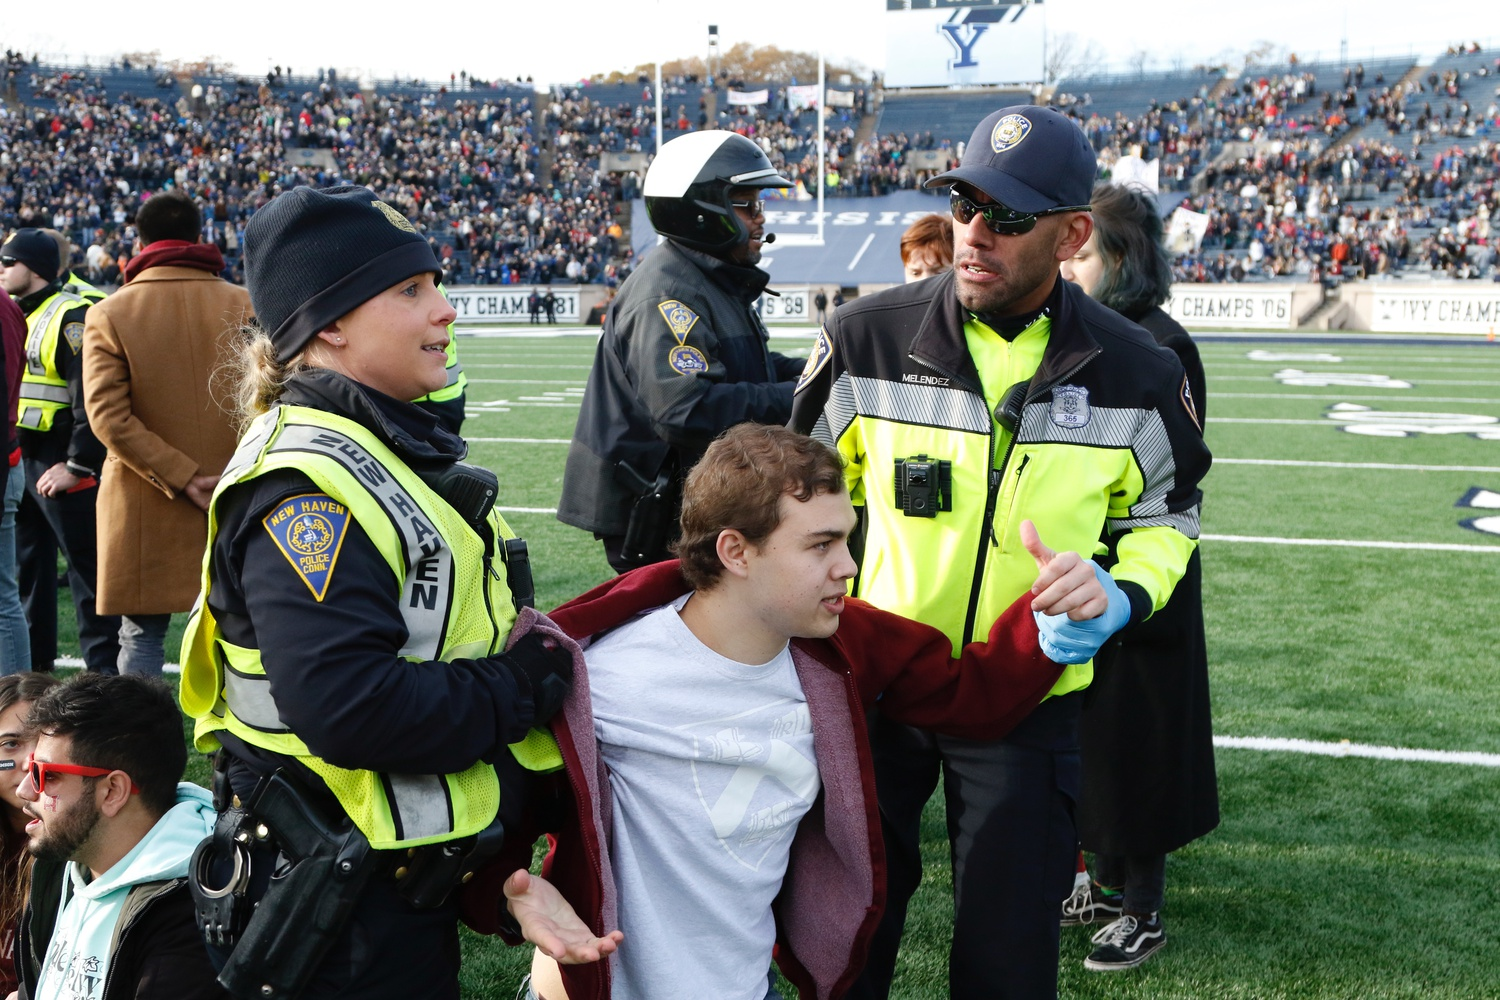 Police officers confront Harvard protester Andrés de Loera-Brust '20 on the field of the Yale Bowl. Divest protesters from both Harvard and Yale stormed the field during halftime of the 136th edition of the Game.